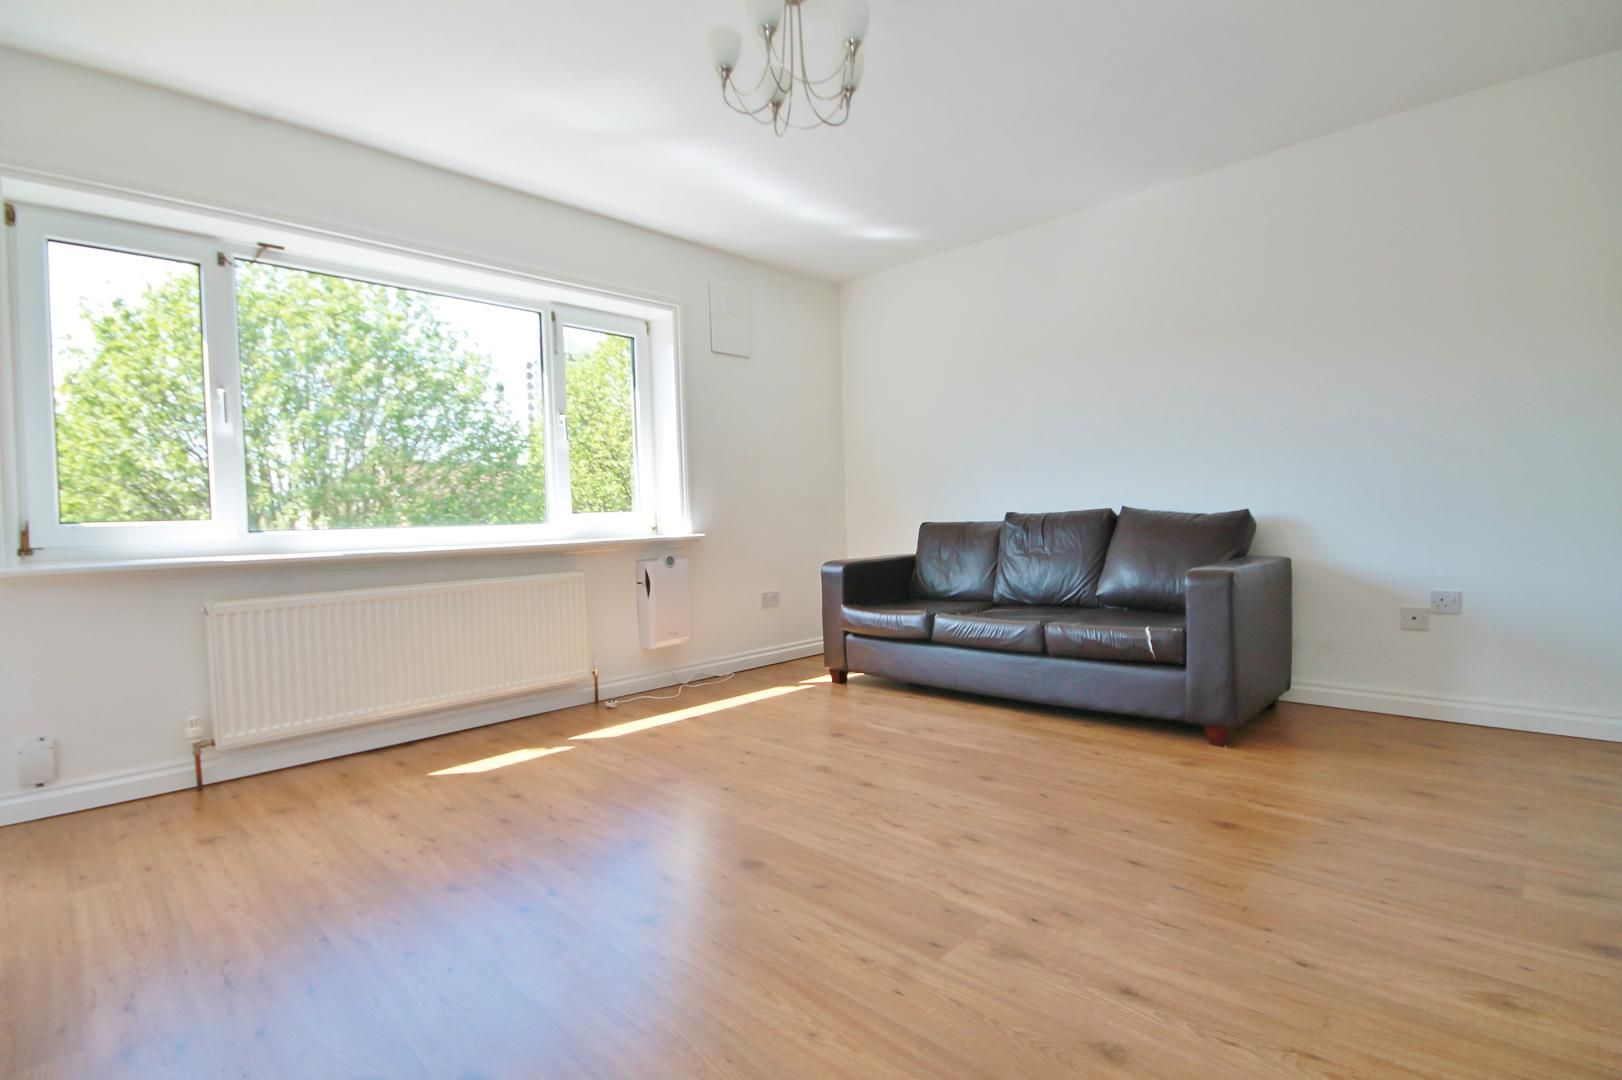 3 bed flat to rent in Storey Street, E16